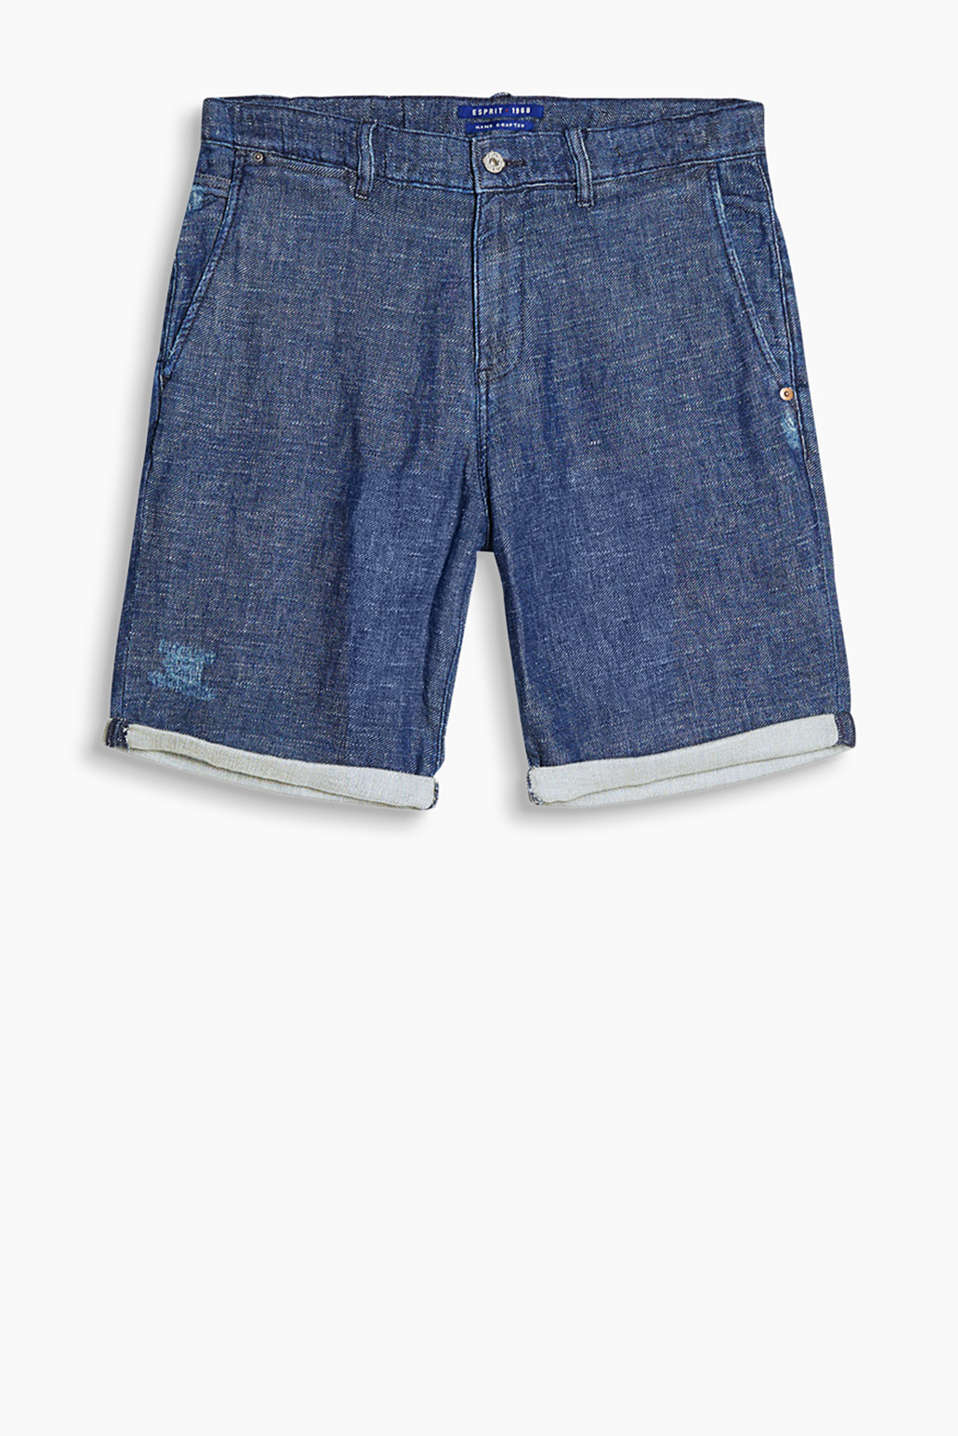 Denim shorts in a loose cut in a cool wash, with distressed effects